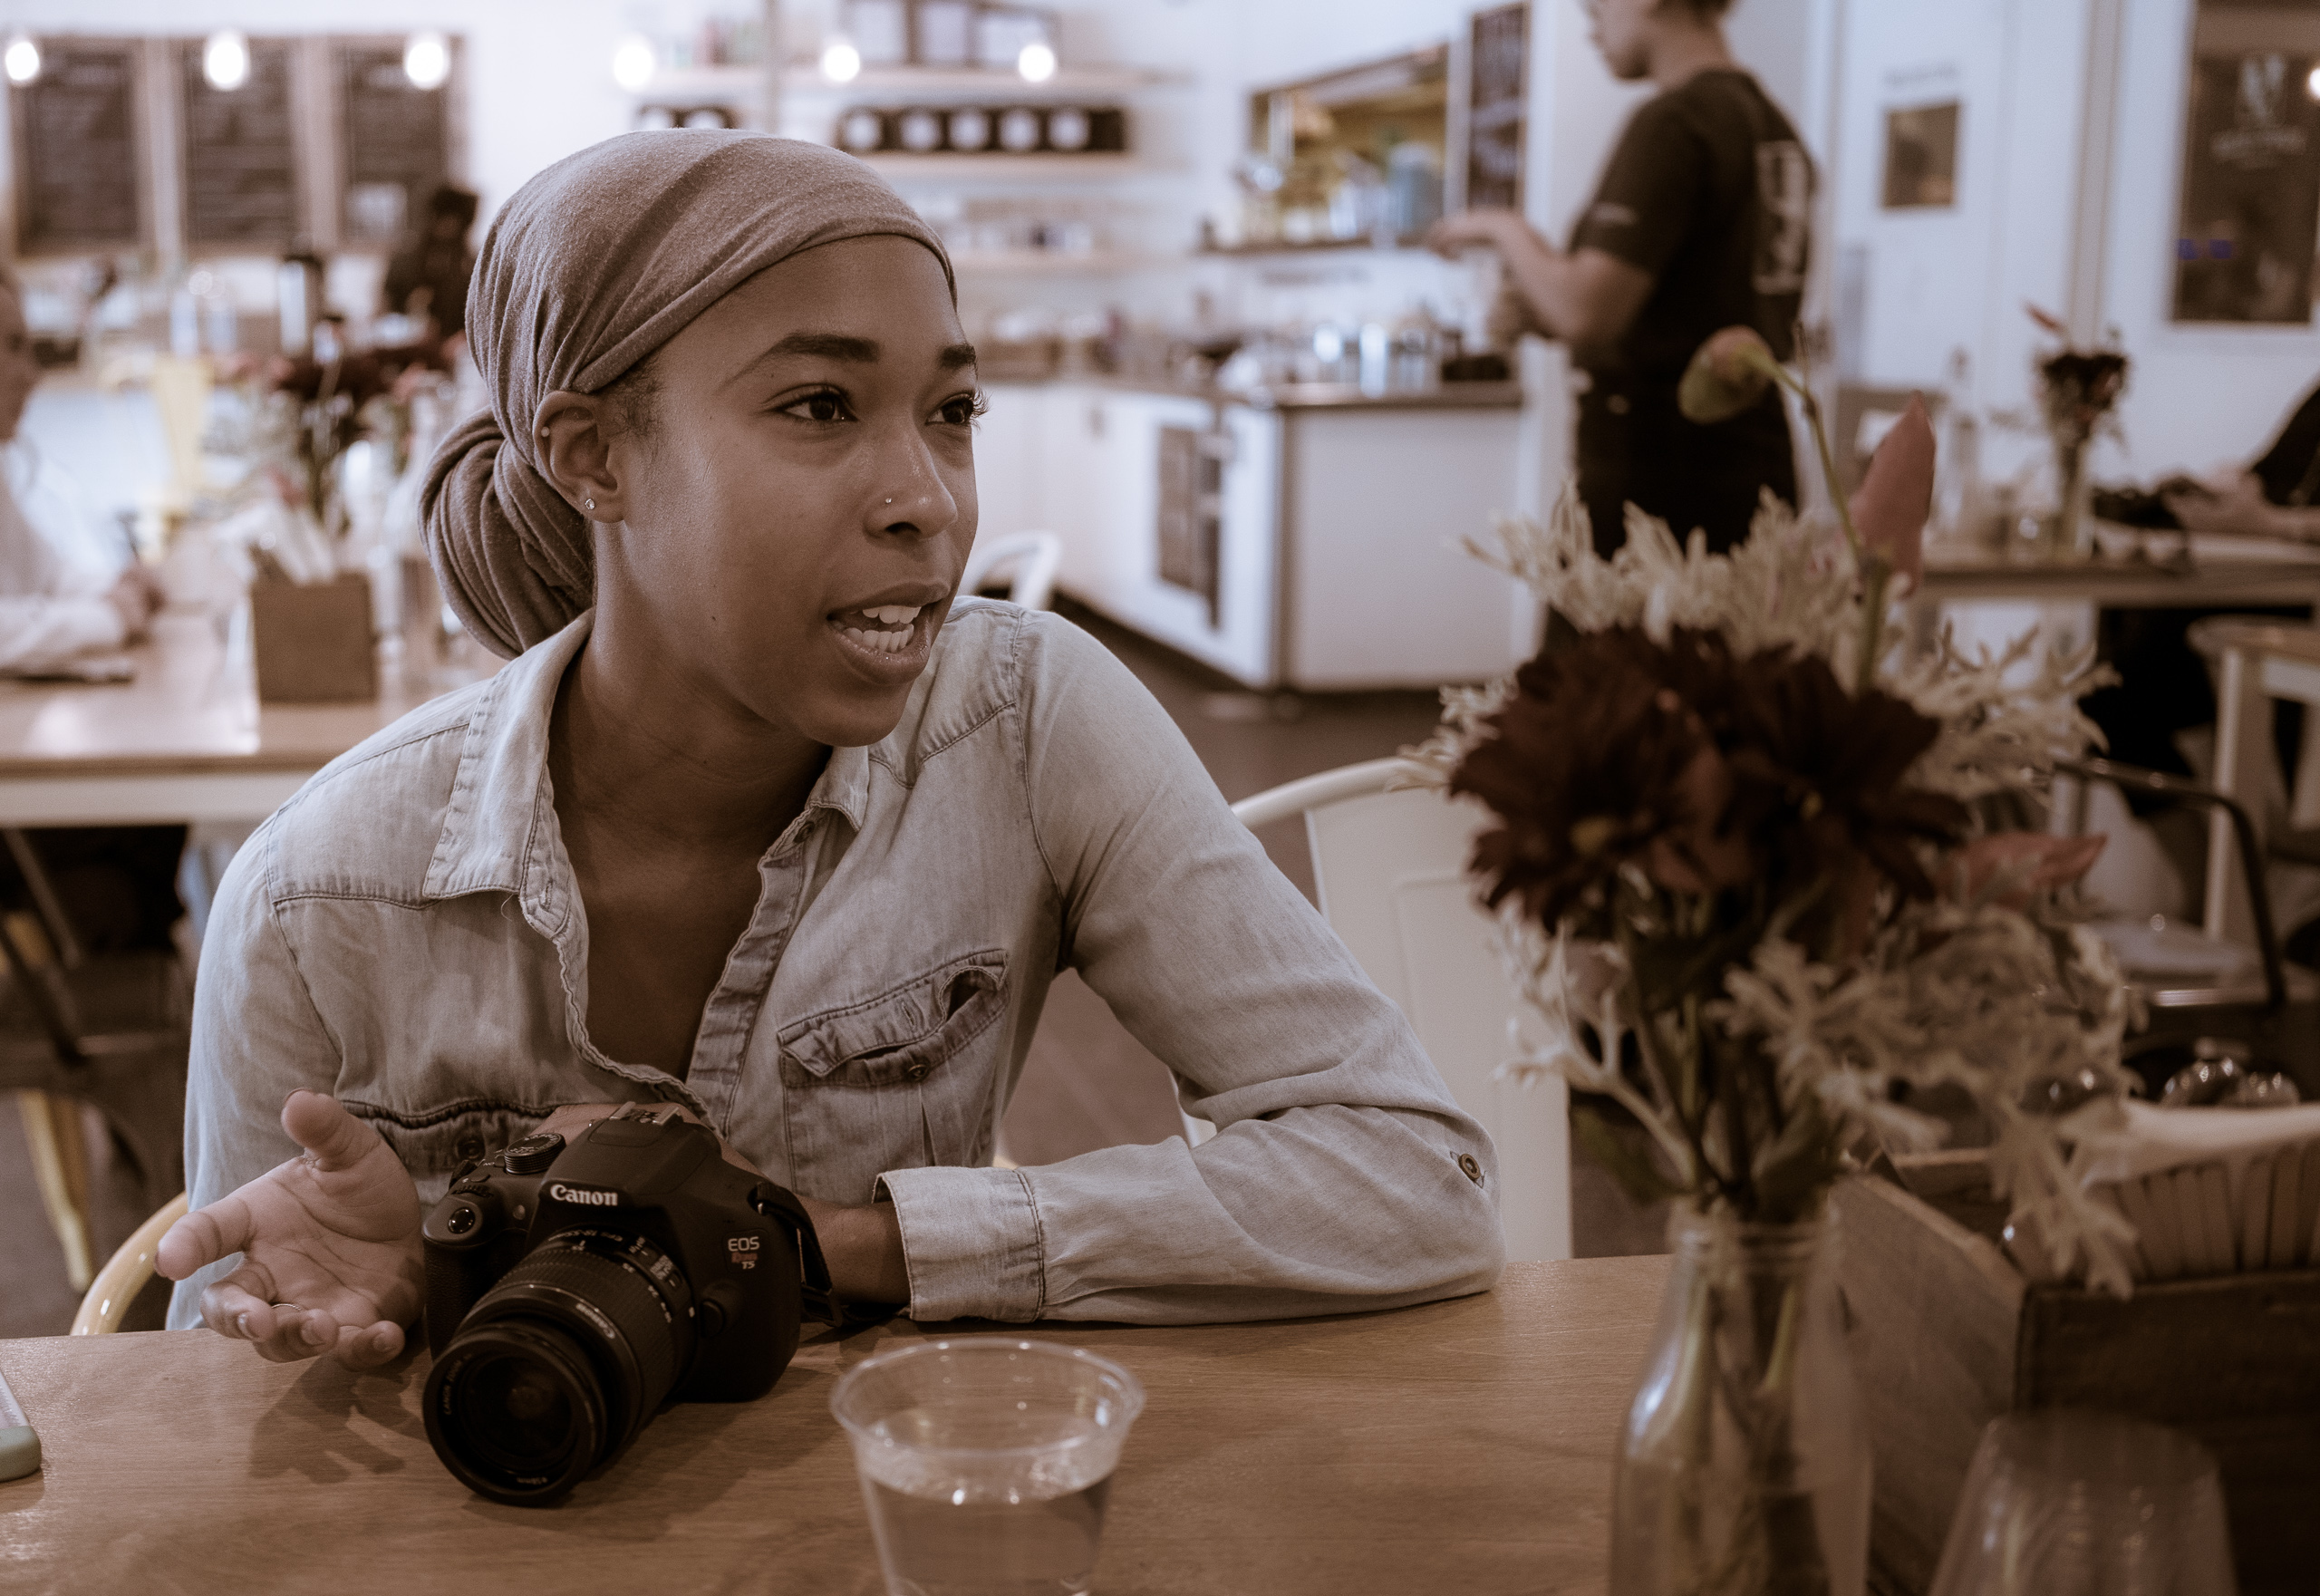 Chelsey Reese having breakfast at Poppy + Rose in the Downtown Los Angeles Flower District